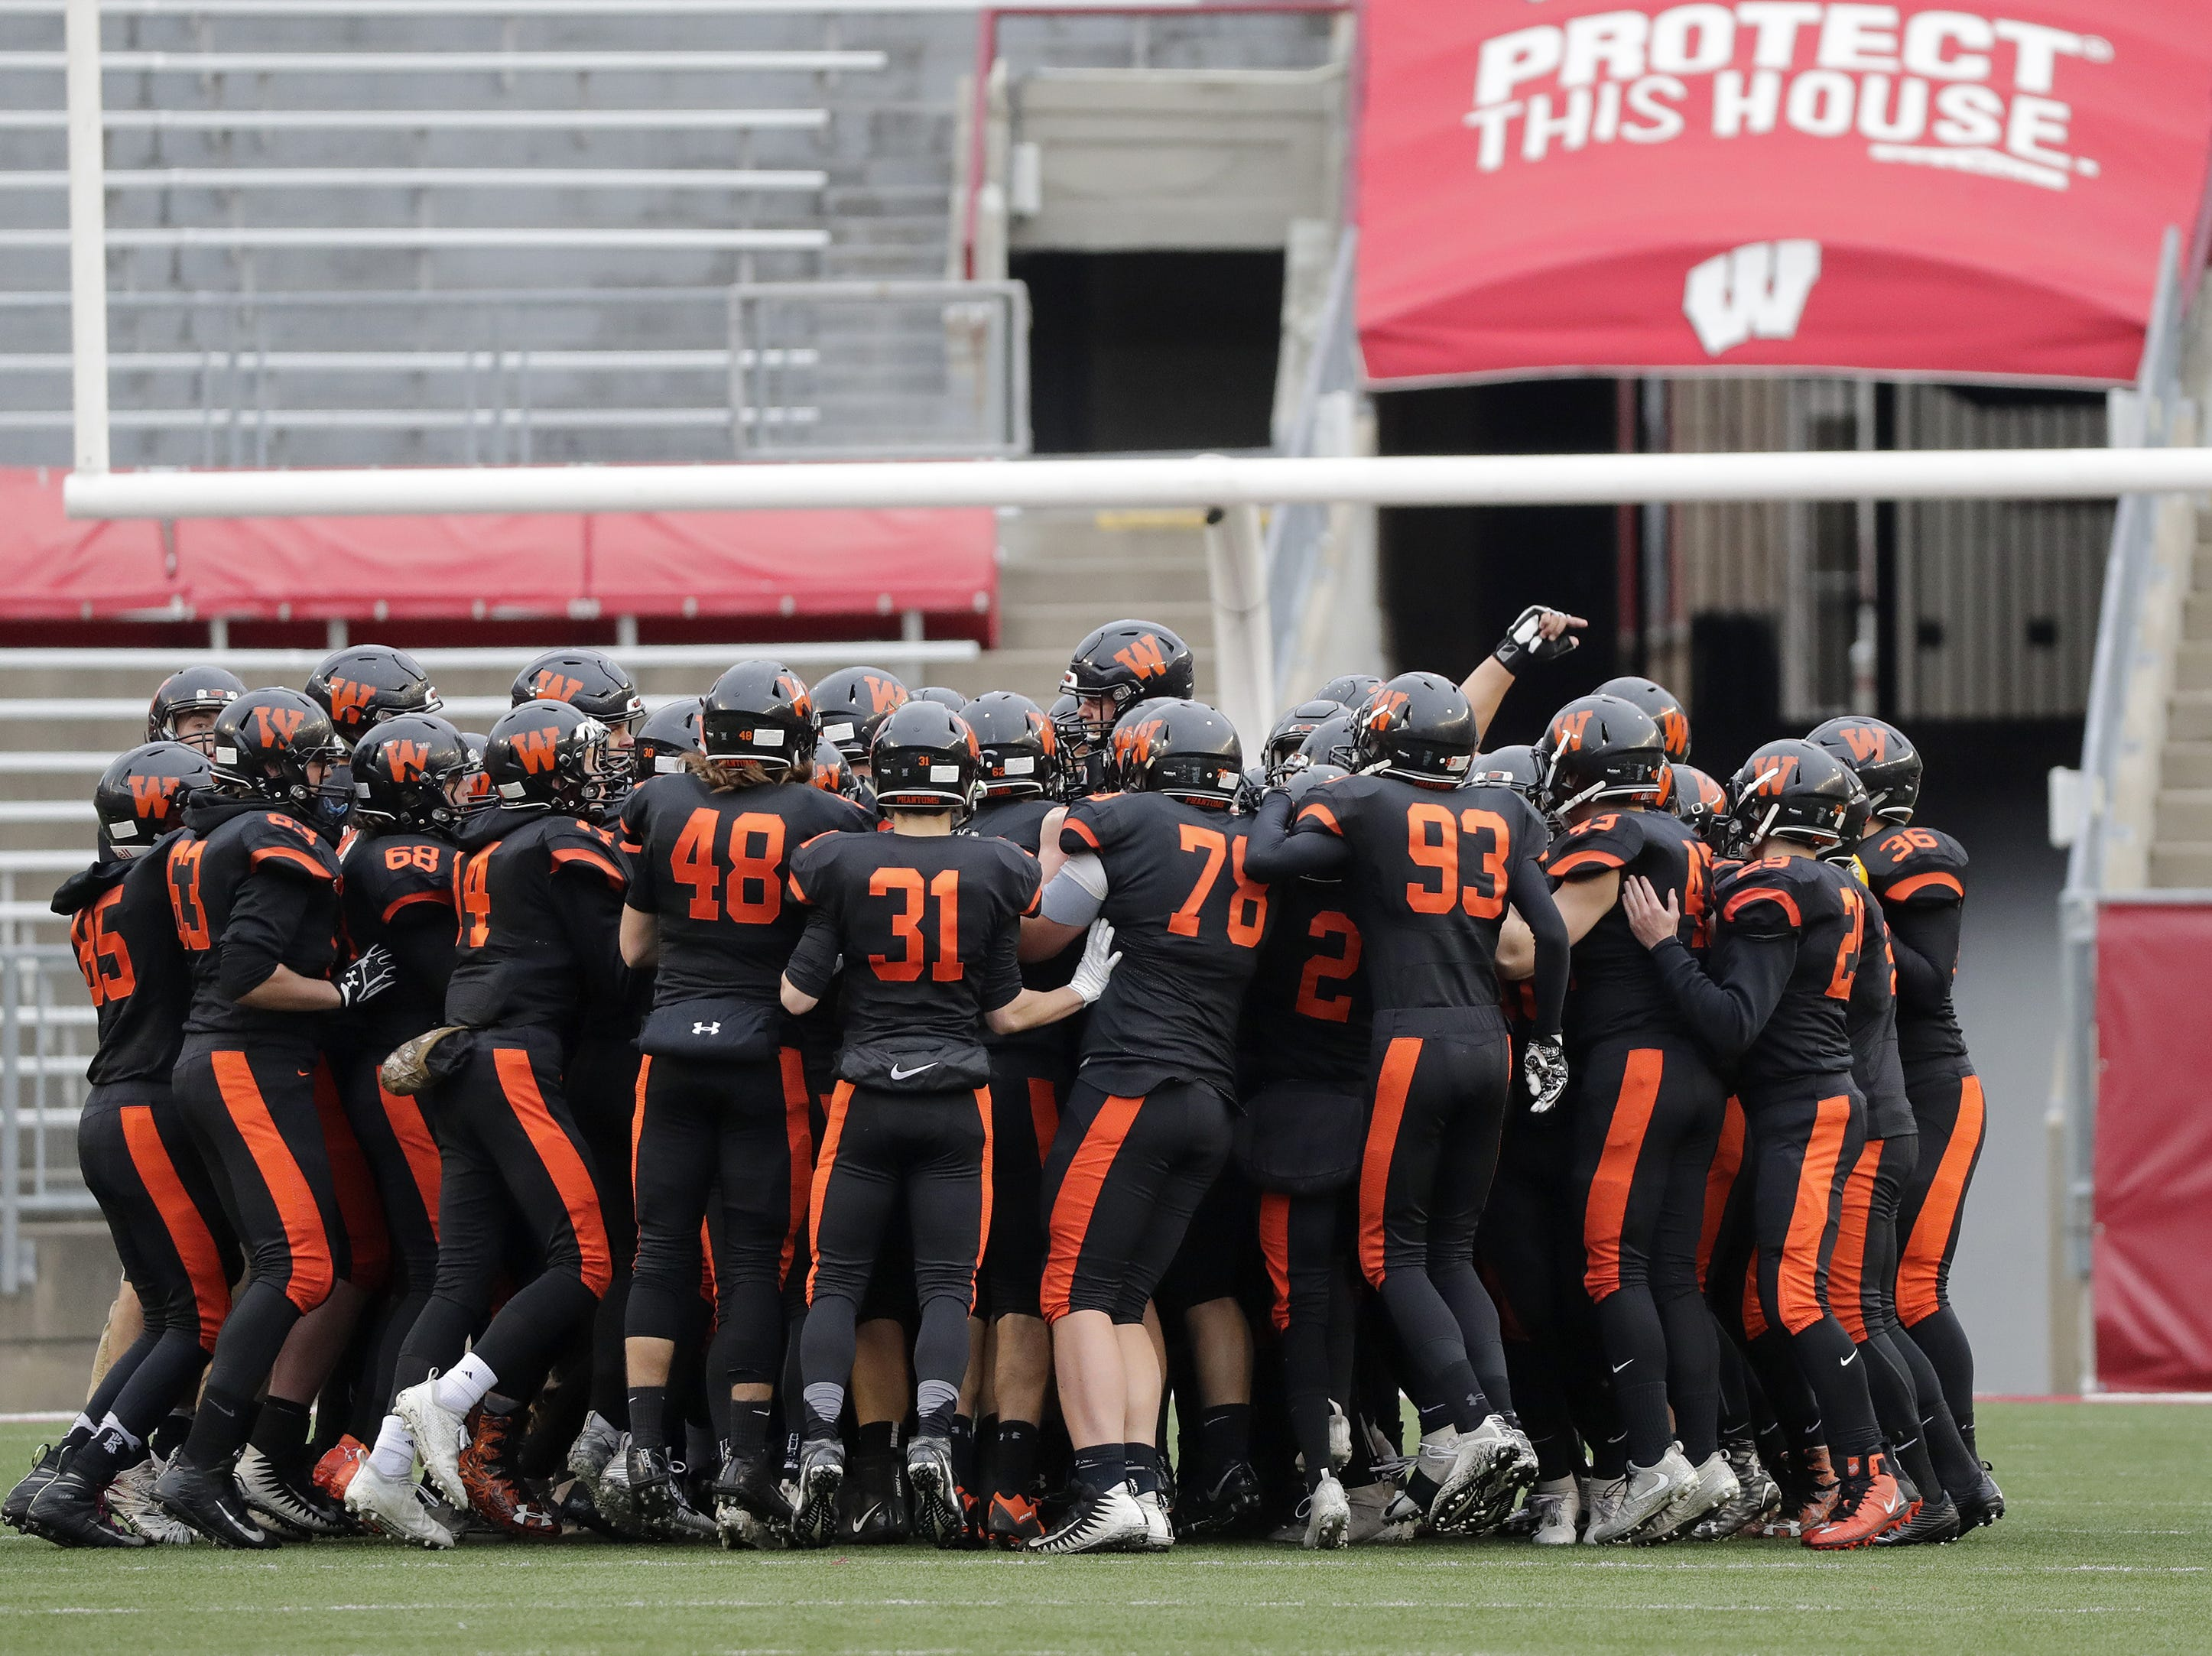 West De Pere take the field to face Catholic Memorial in the WIAA Division 3 championship game at Camp Randall Stadium on Friday, November 16, 2018 in Madison, Wis.